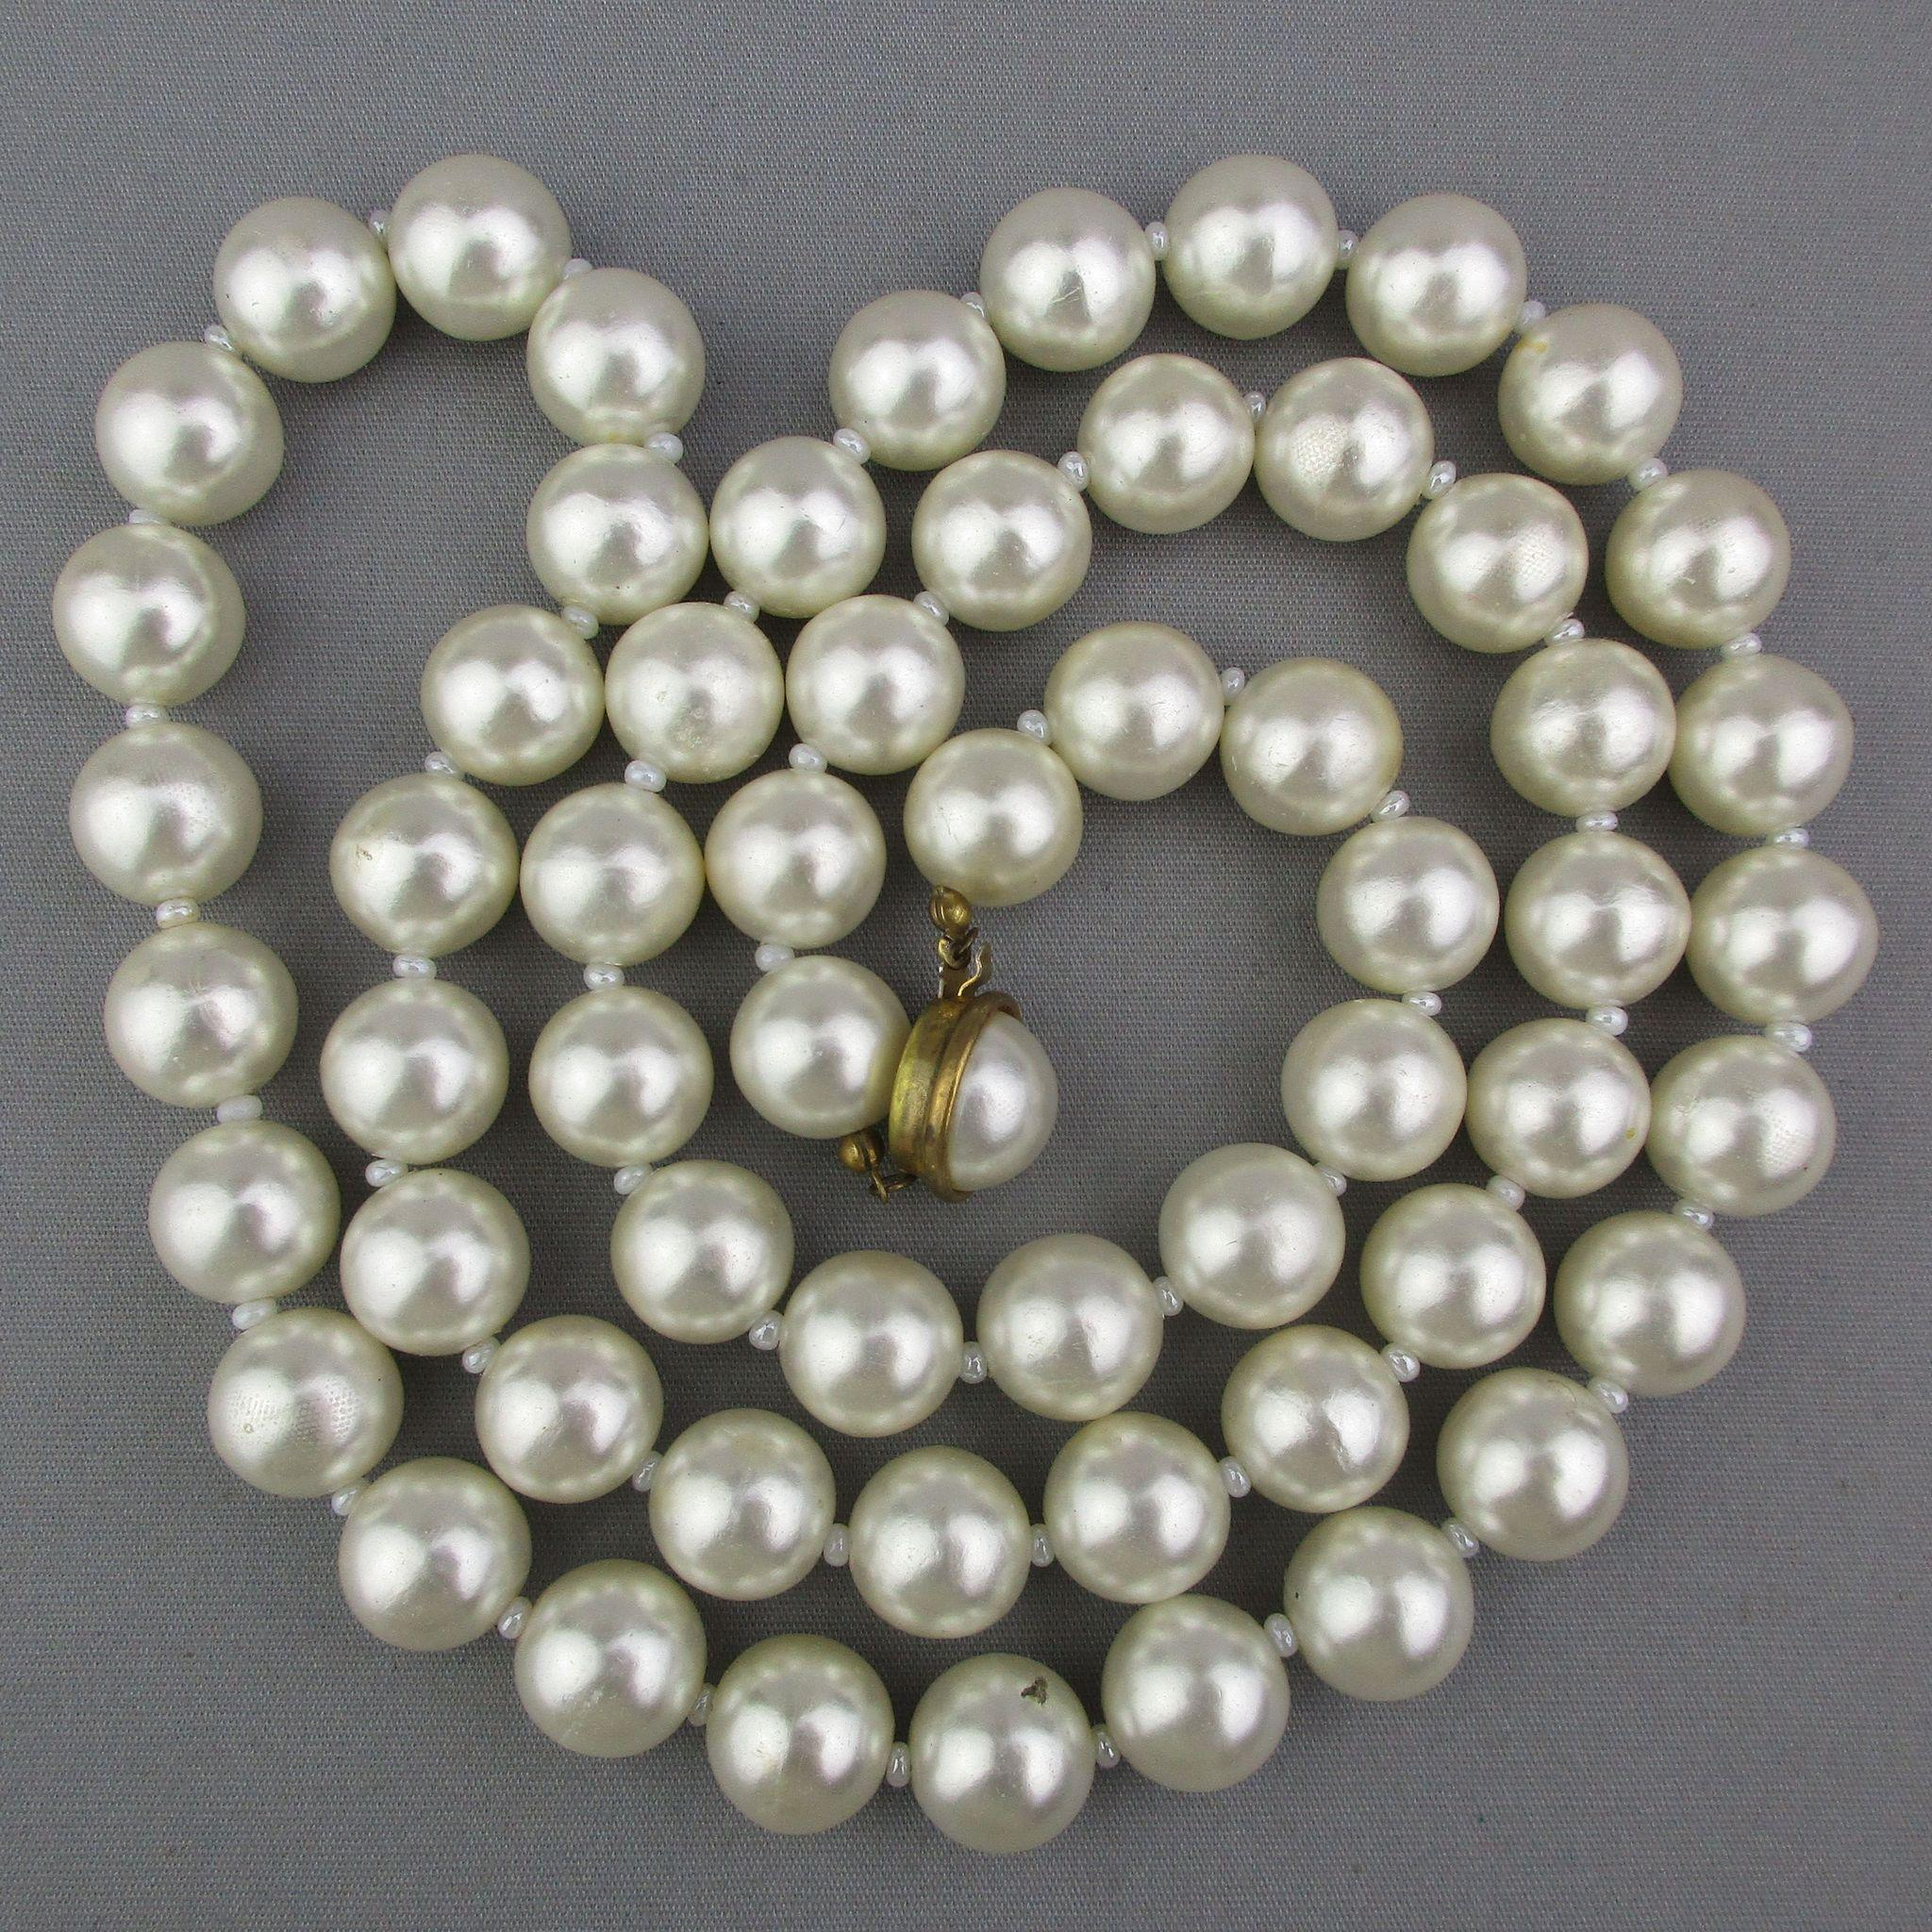 Long Vintage Miriam Haskell Faux Pearls Necklace 12mm